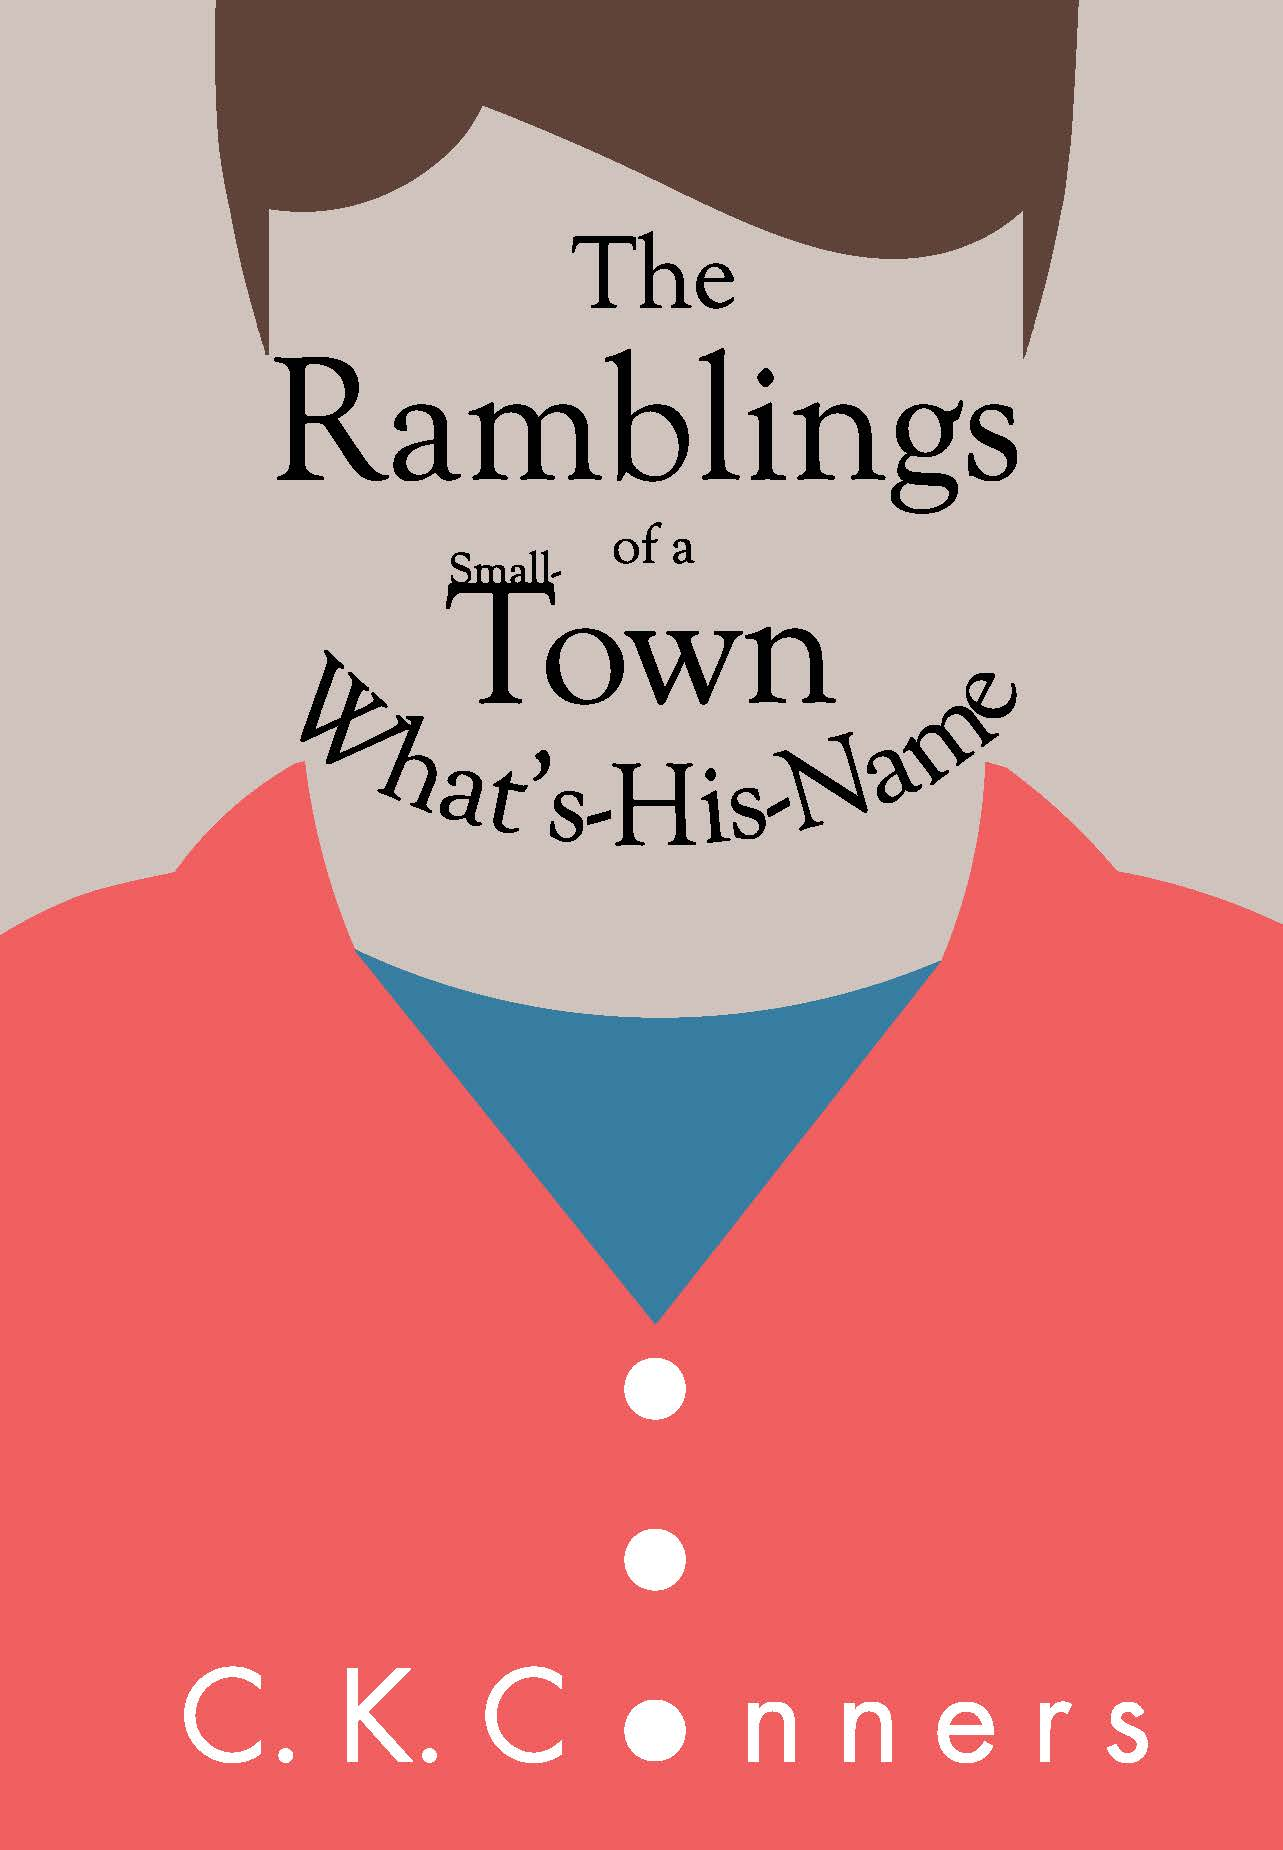 The Ramblings of a Small-Town What's-His-Name - Available in Paperback and Ebook Formats© 2018 by C. K. Conners